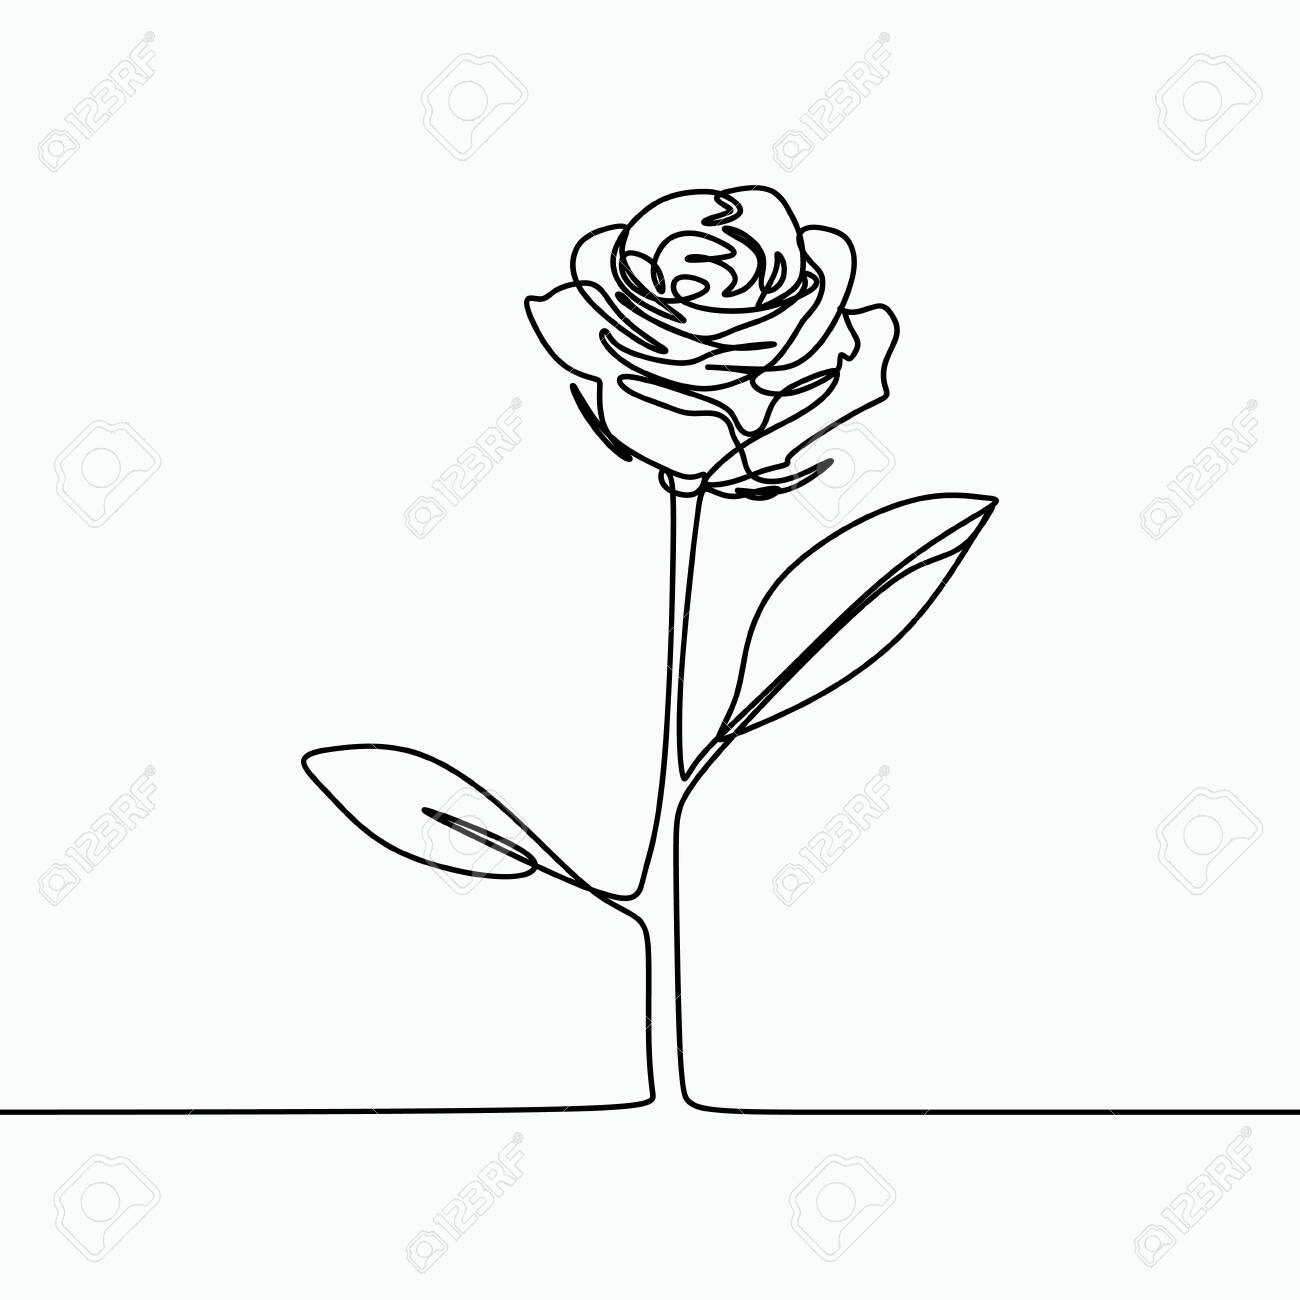 One Line Drawing Of A Rose Flower Minimal Modern And Simple Royalty Free Cliparts Vectors And Stock Illustration Image 128954889